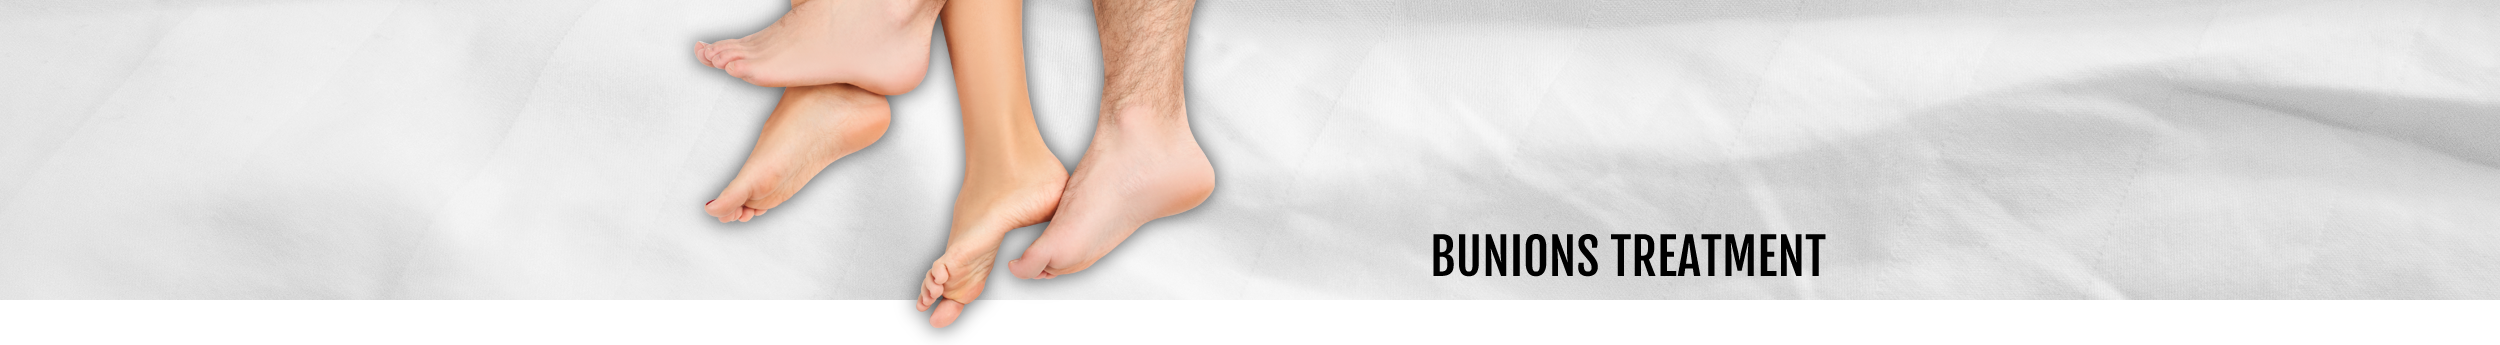 Bunions treatment header for the Walk IN Foot Clinic in central London